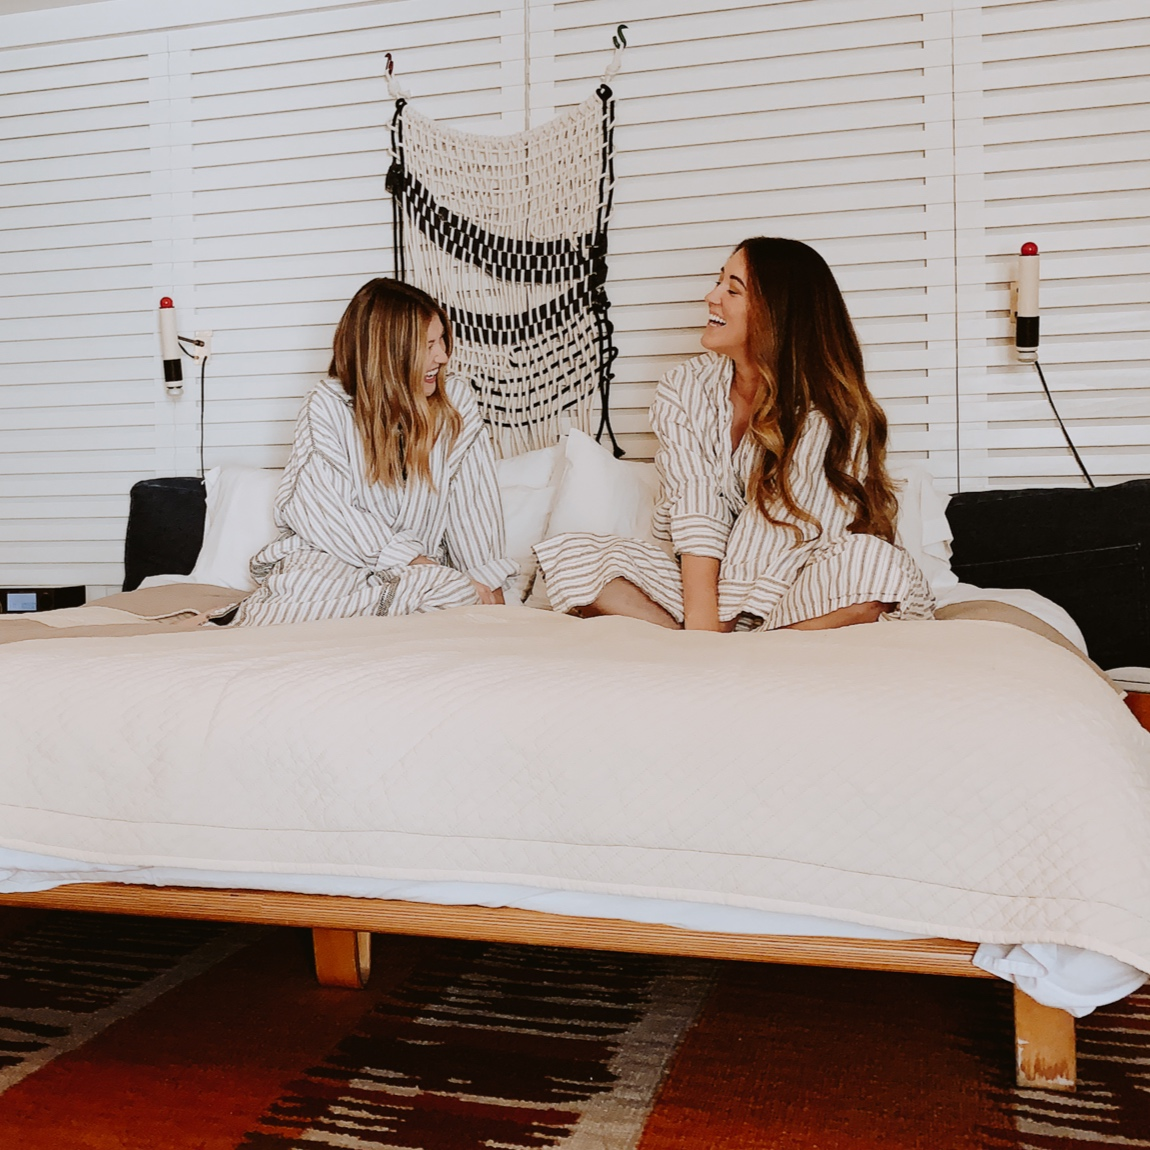 ace_hotel_palm_springs_robes_bed.jpg